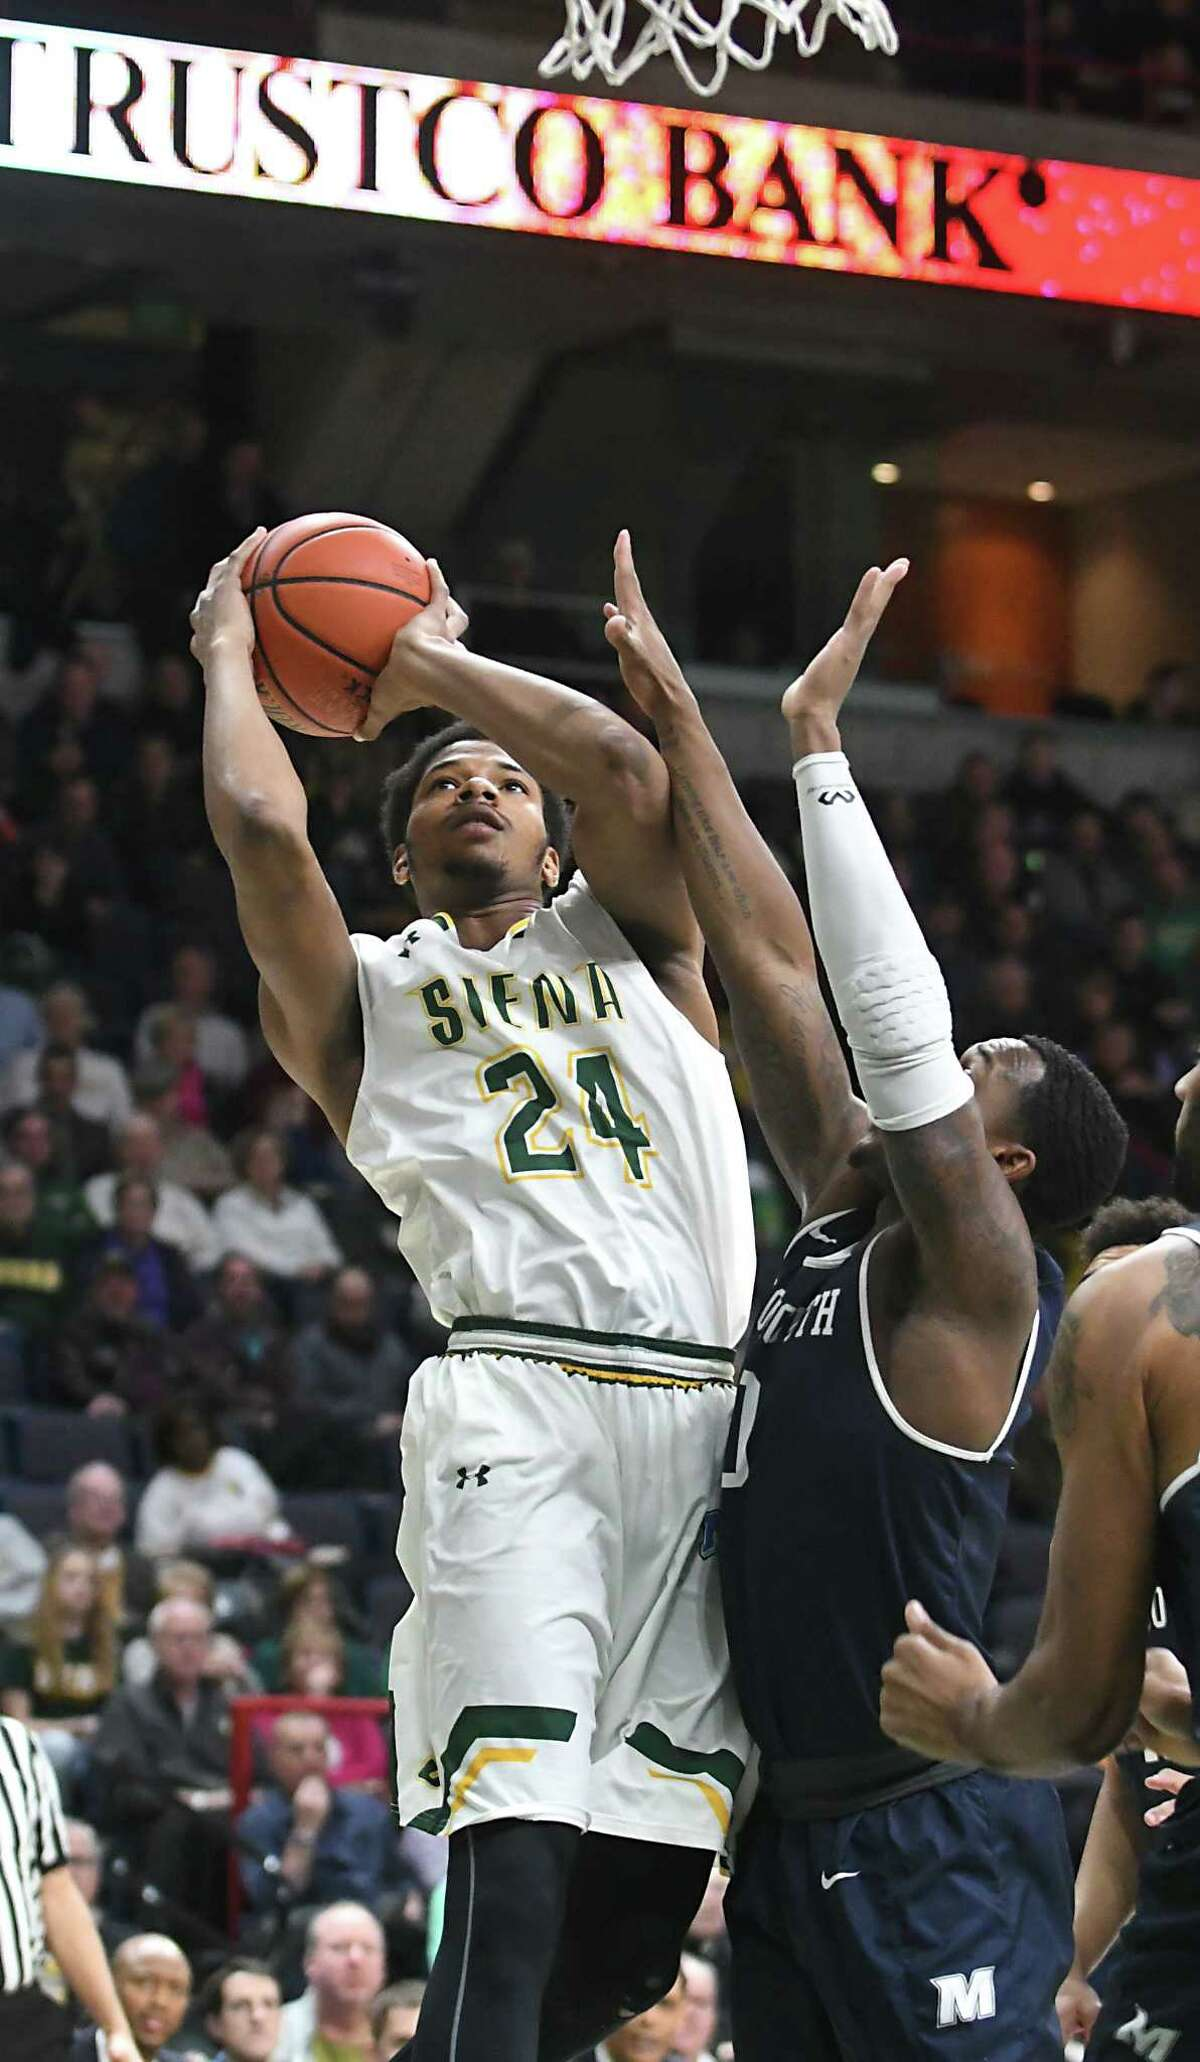 Siena's Lavon Long drives to the hoop during a basketball game against Monmouth at the Times Union Center on Monday, Feb. 13, 2017 in Albany, N.Y. (Lori Van Buren / Times Union)